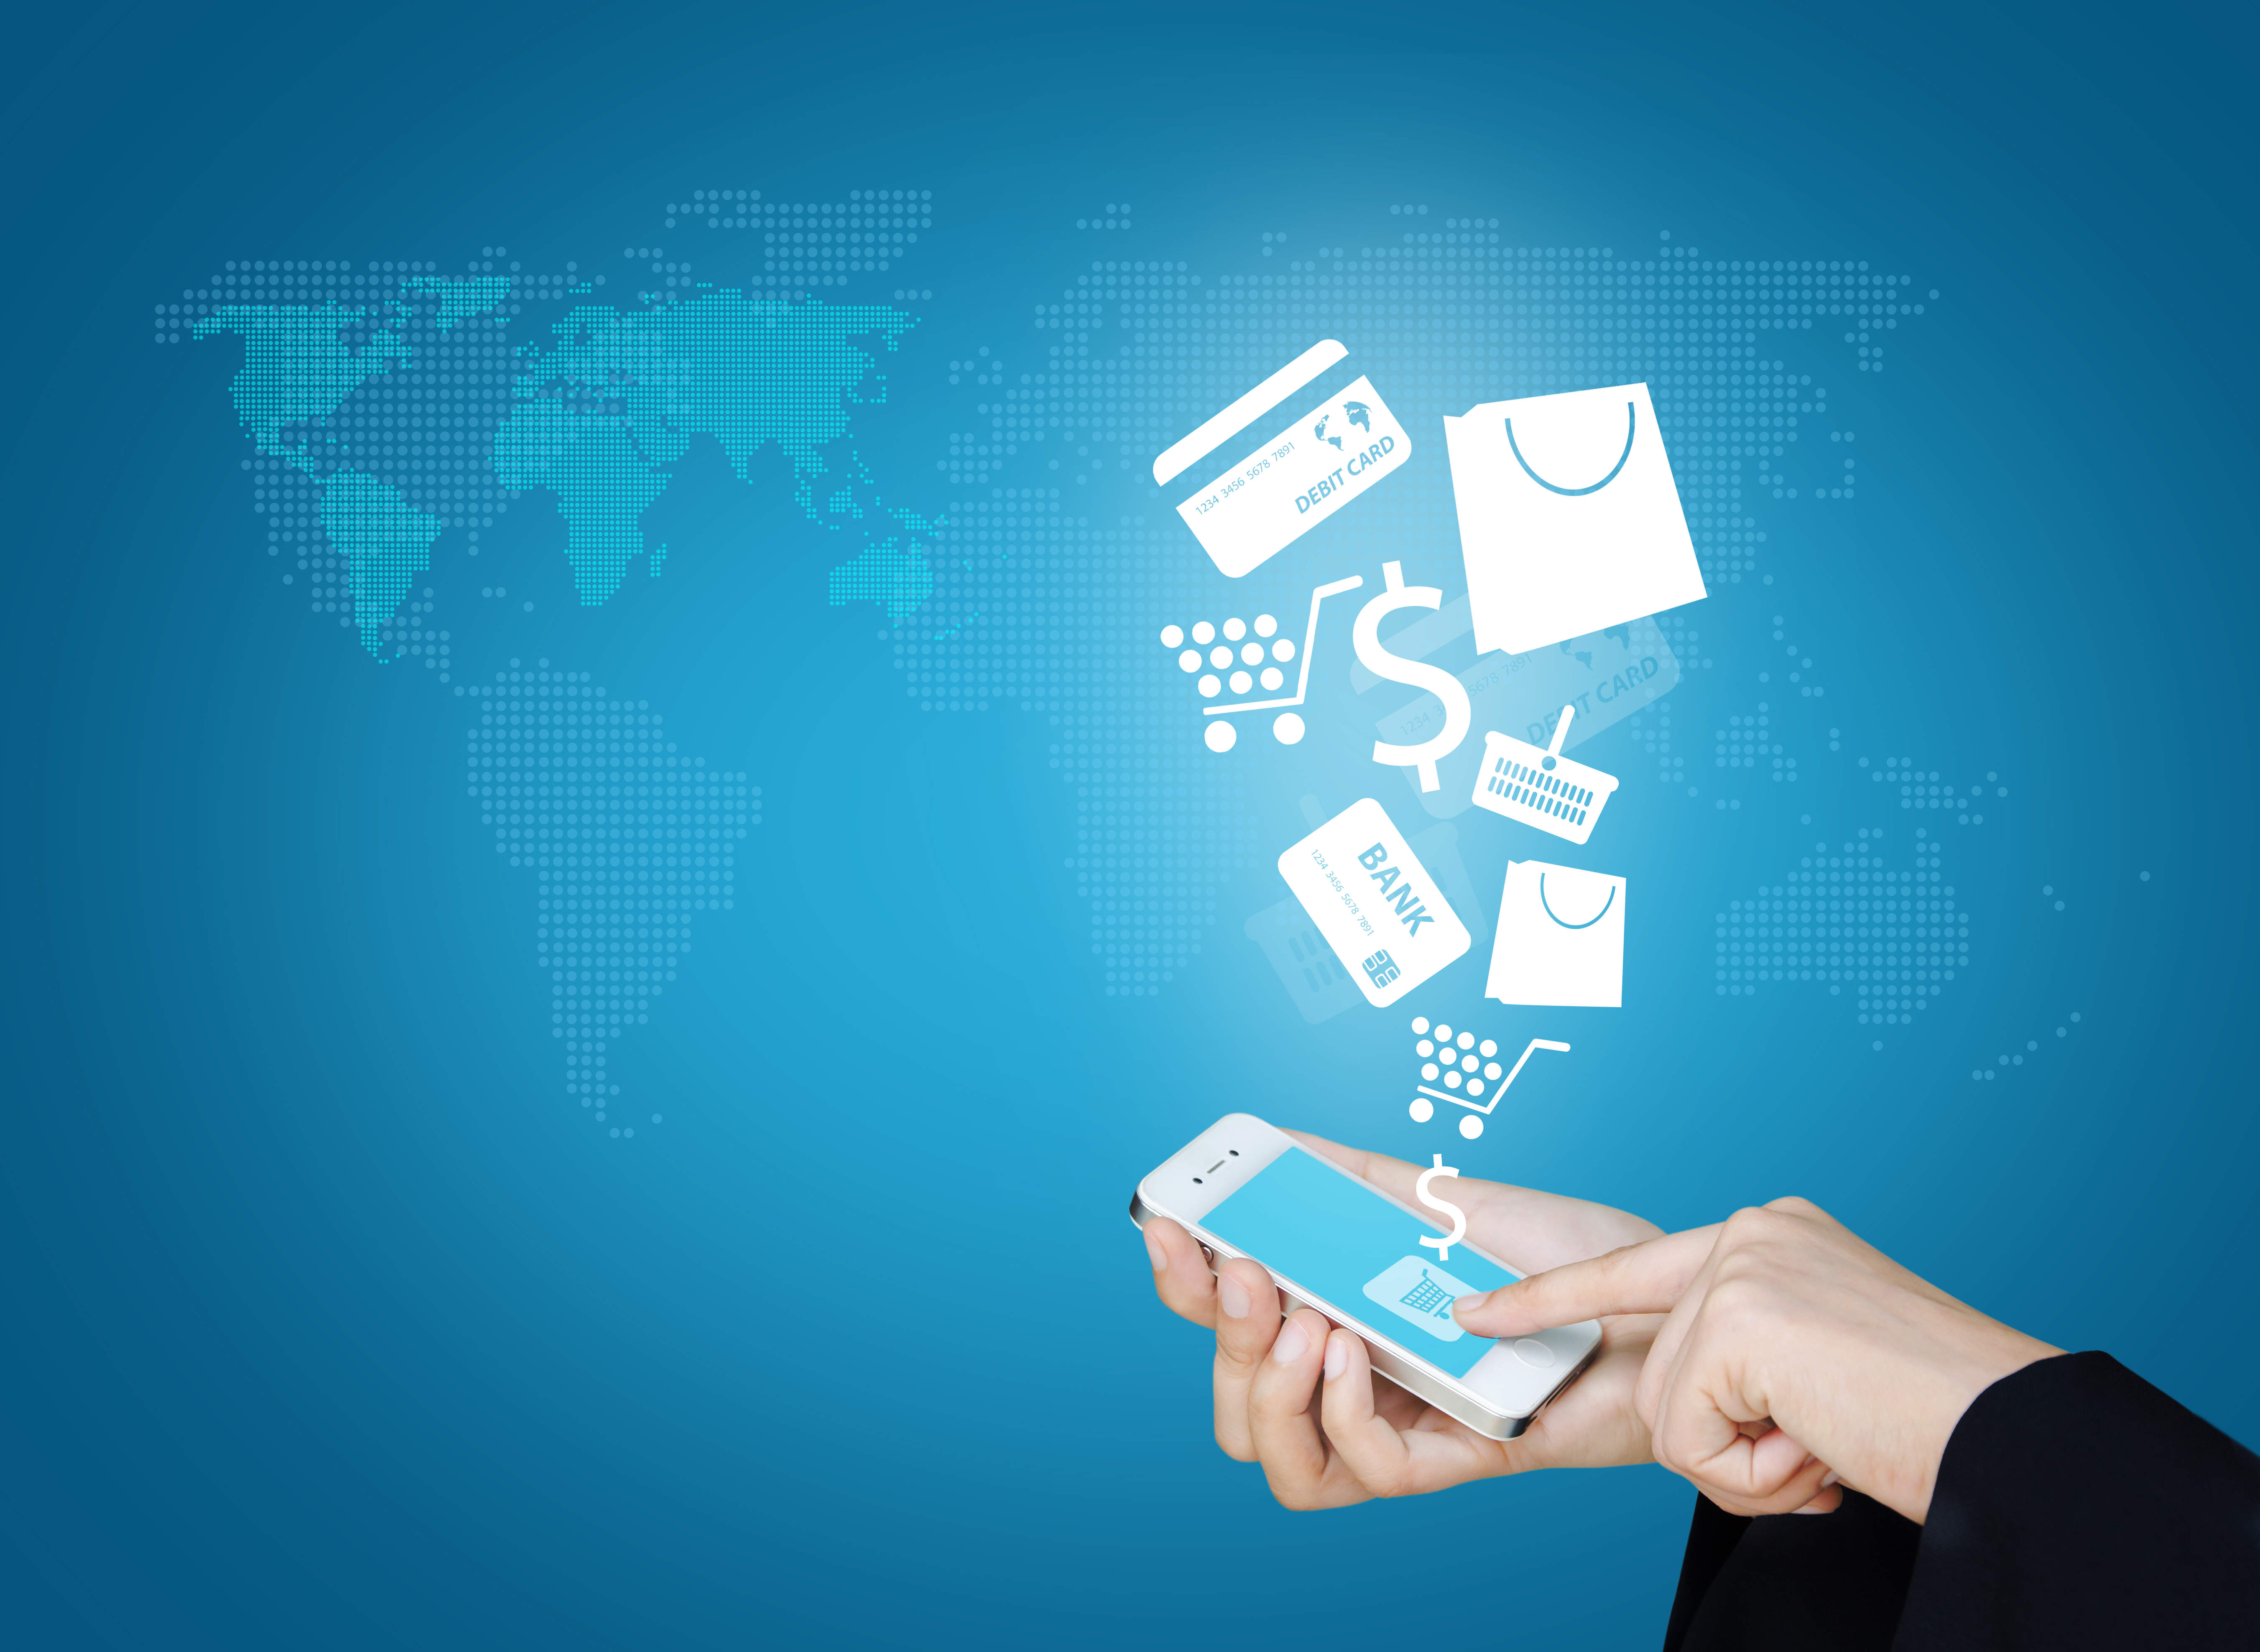 e commerce - The benefits of a mobile wallet